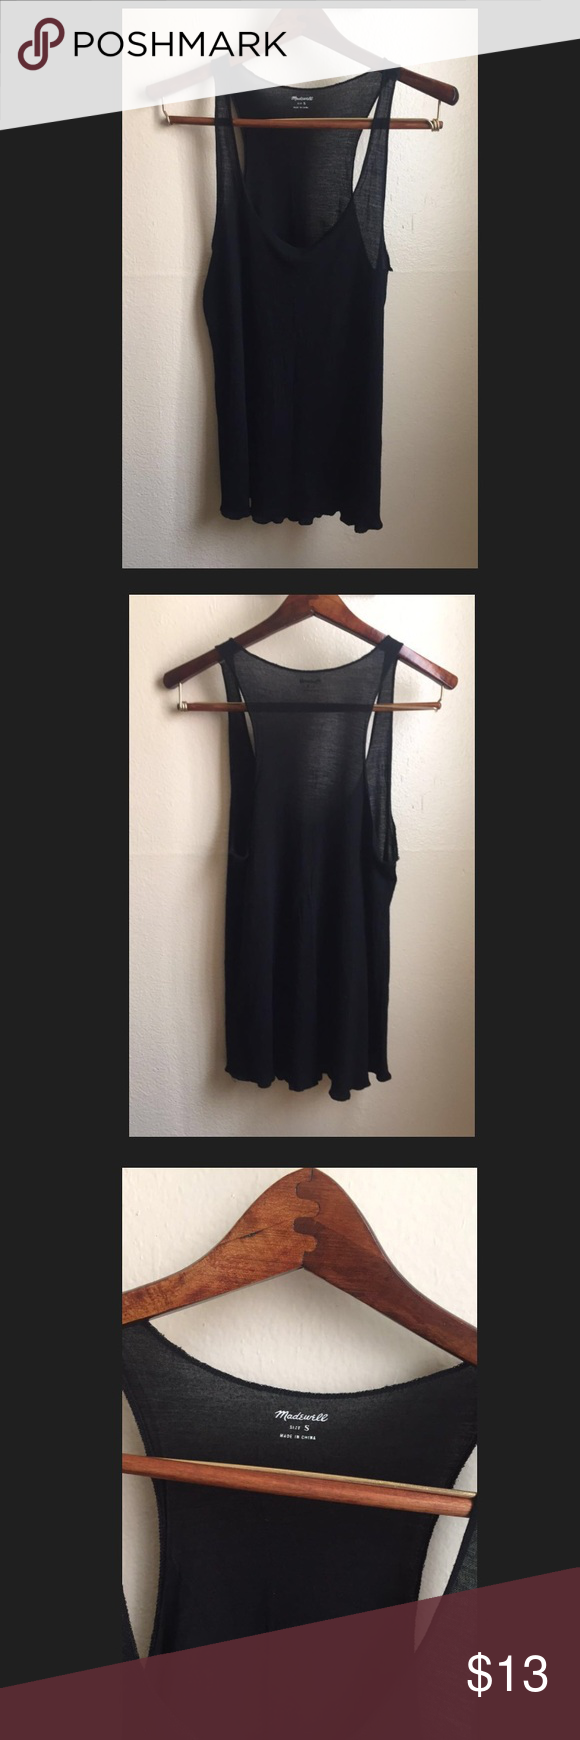 Madewell tank top Super soft and comfy Madewell tank top that can easily be layered. Has two tiny holes as shown in pictures. In great condition! Tops Tank Tops